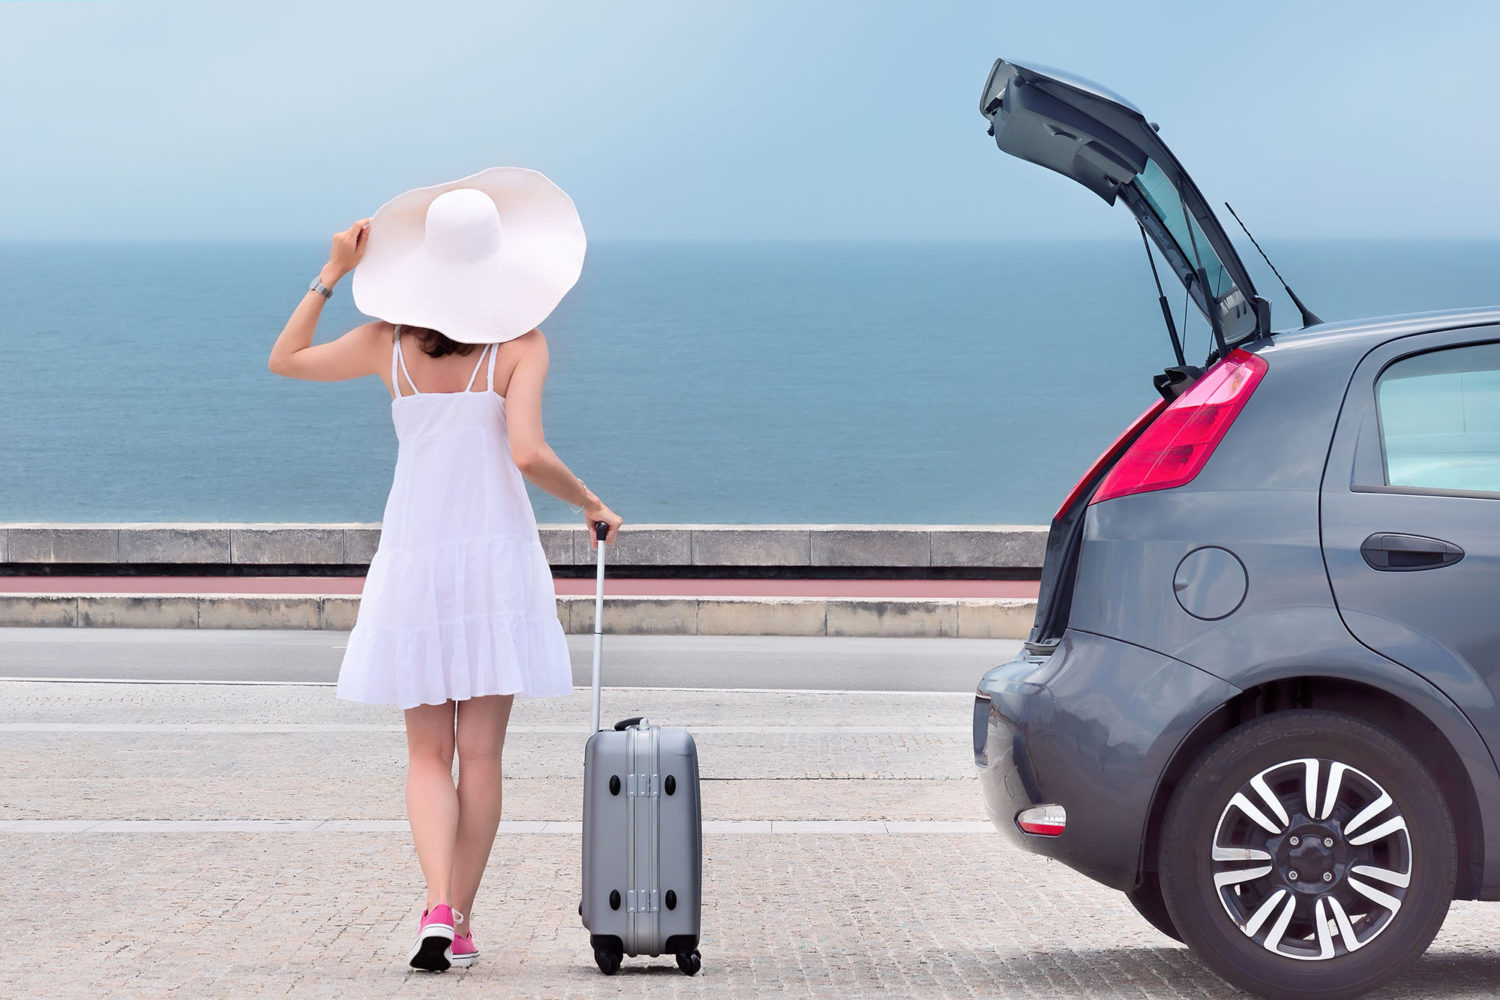 Woman in a big white hat walking towards a private hire car with her luggage